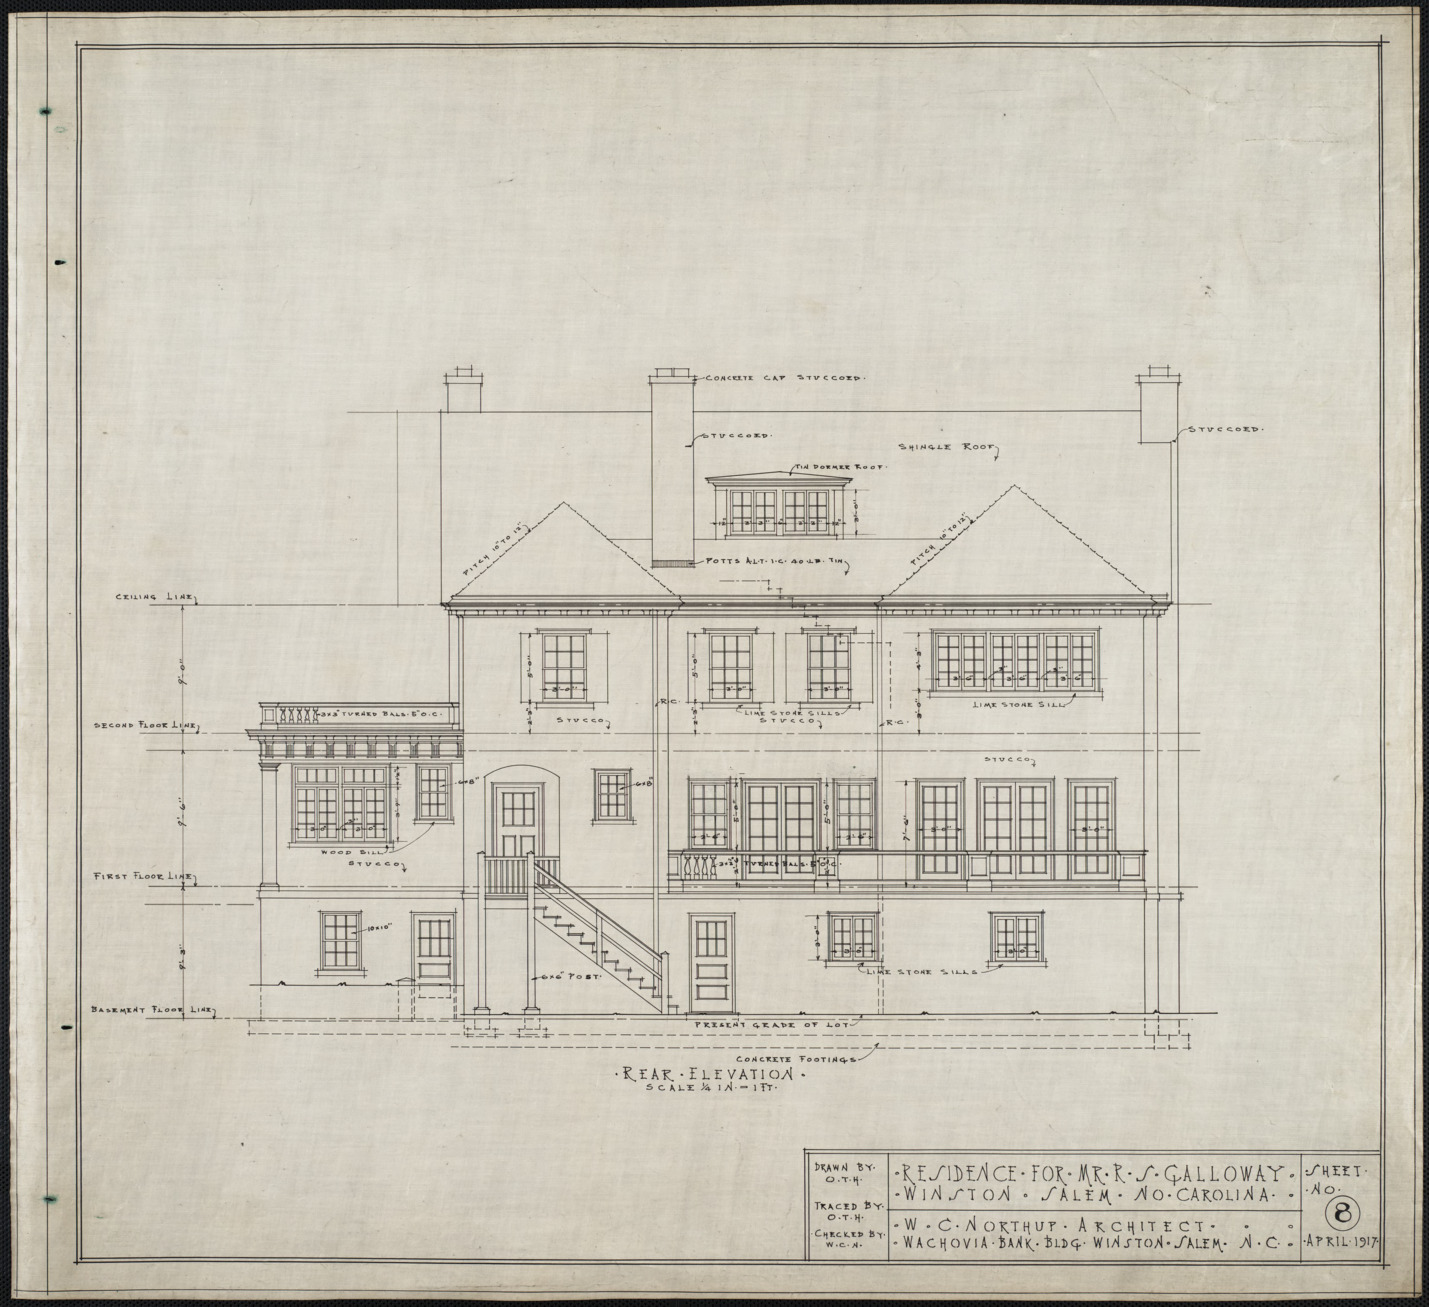 Rear elevation r s galloway house winston salem n c for What is rear elevation